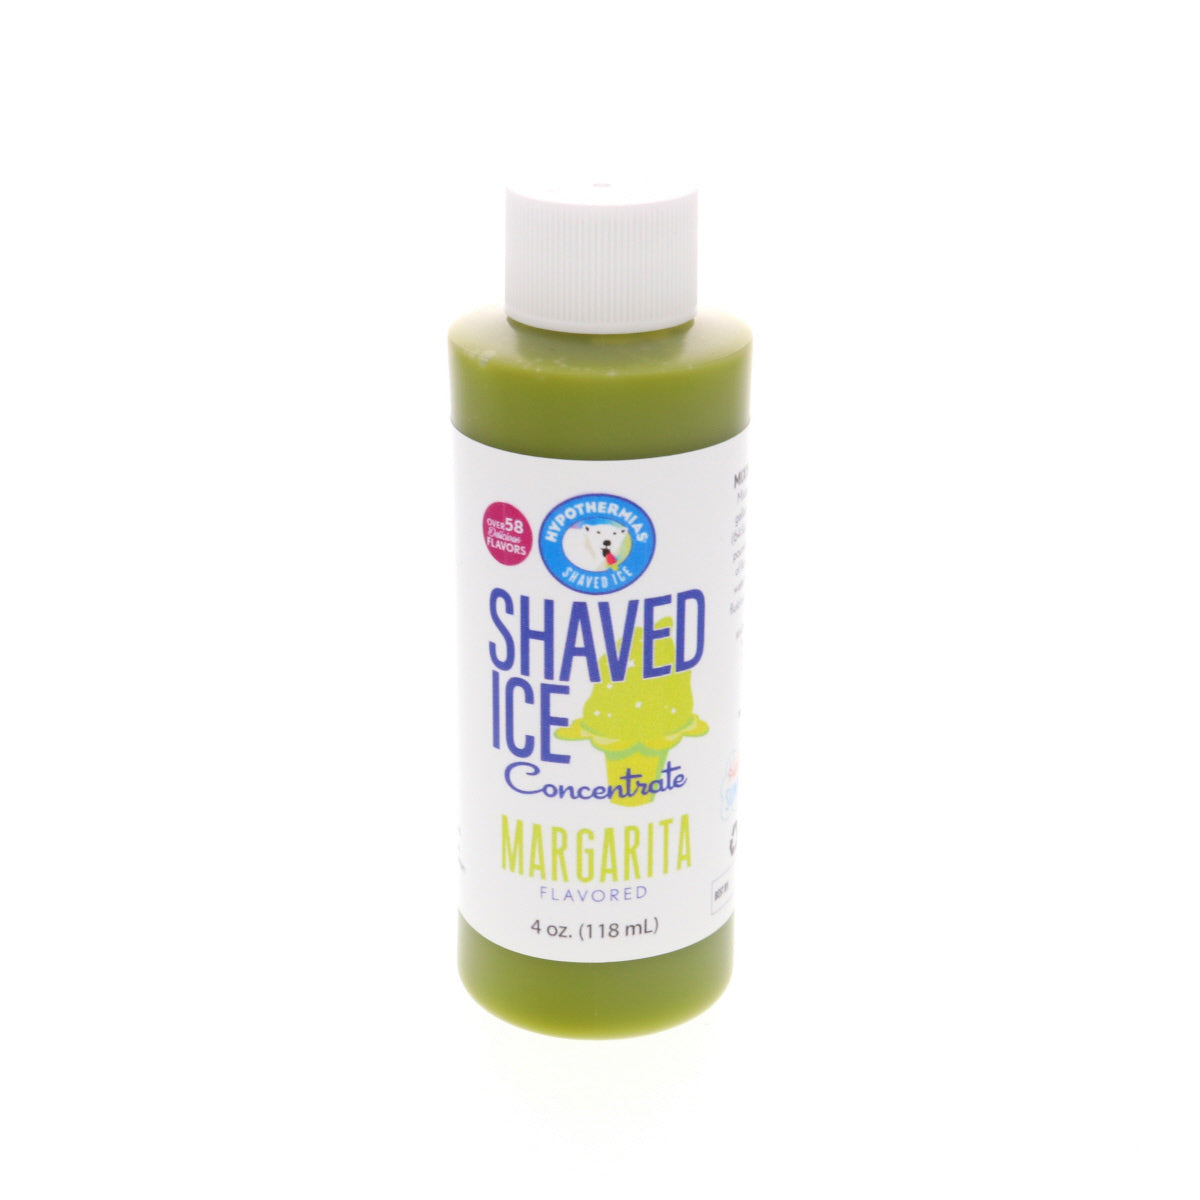 Margarita Hawaiian Shaved Ice Syrup flavor concentrate 4 Fl Oz